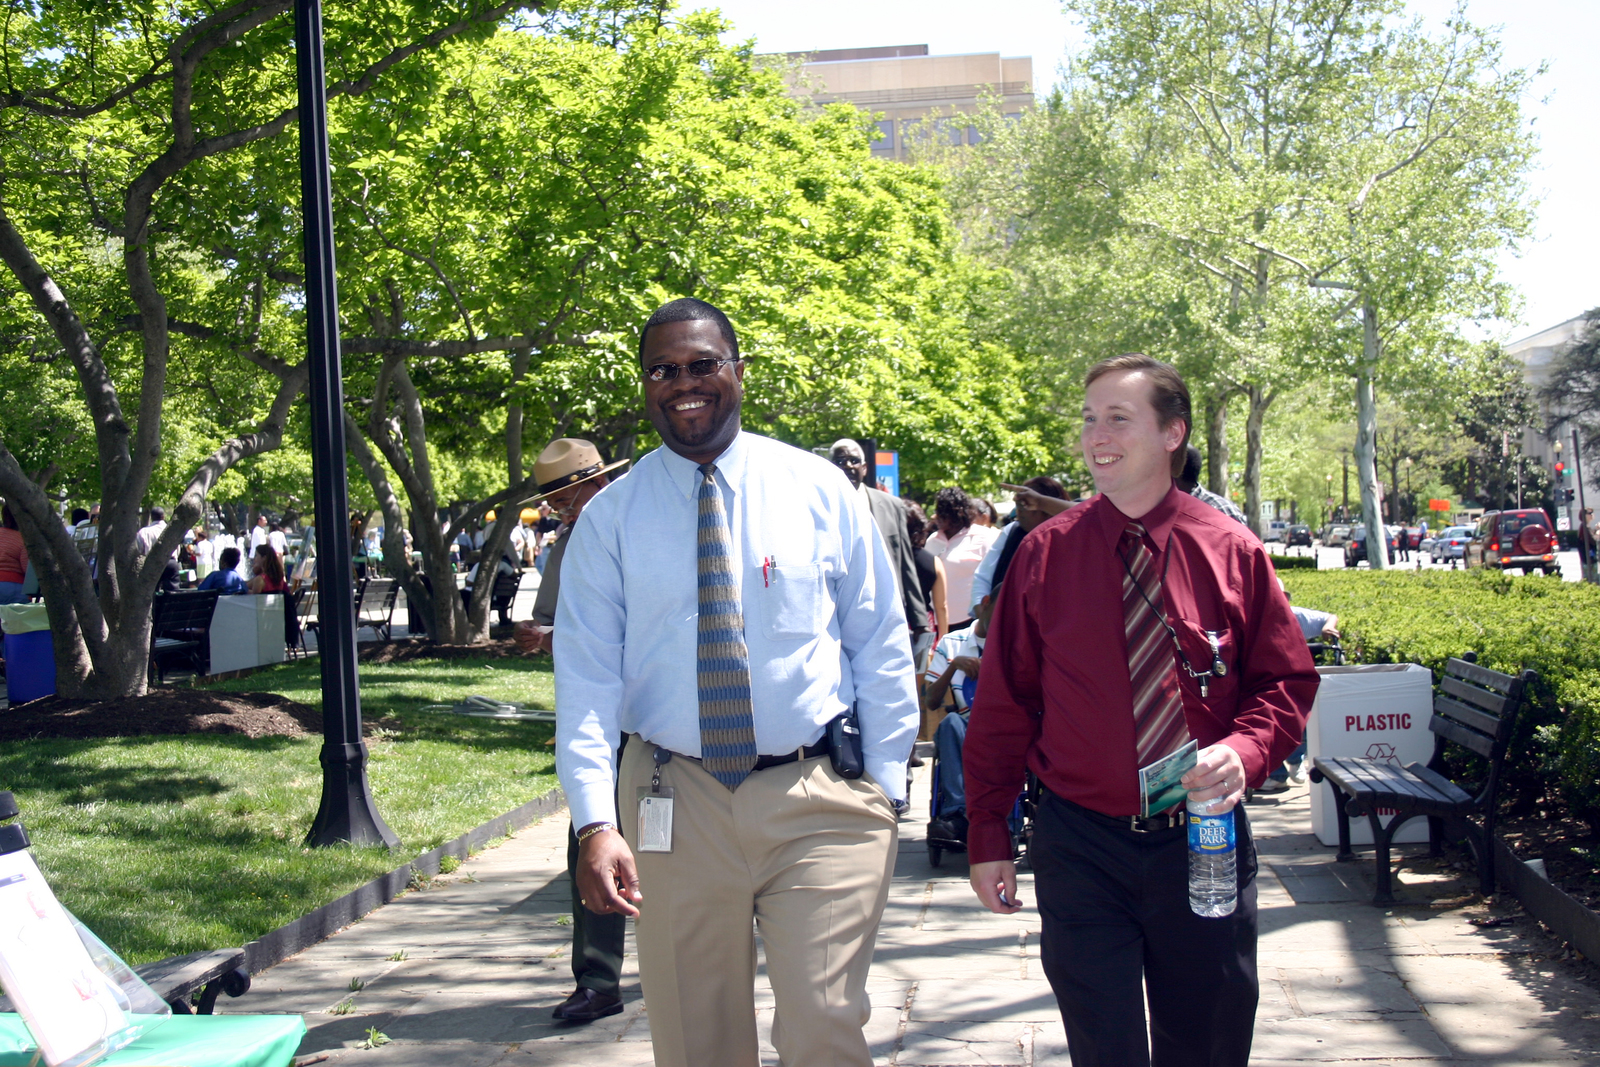 [Assignment: 48-DPA-N_EDay_Mall_4-20-06] Earth Day activities [on and around] the National Mall, [including Department of the Interior and other federal agency displays] [48-DPA-N_EDay_Mall_4-20-06_IMG_5868.JPG]